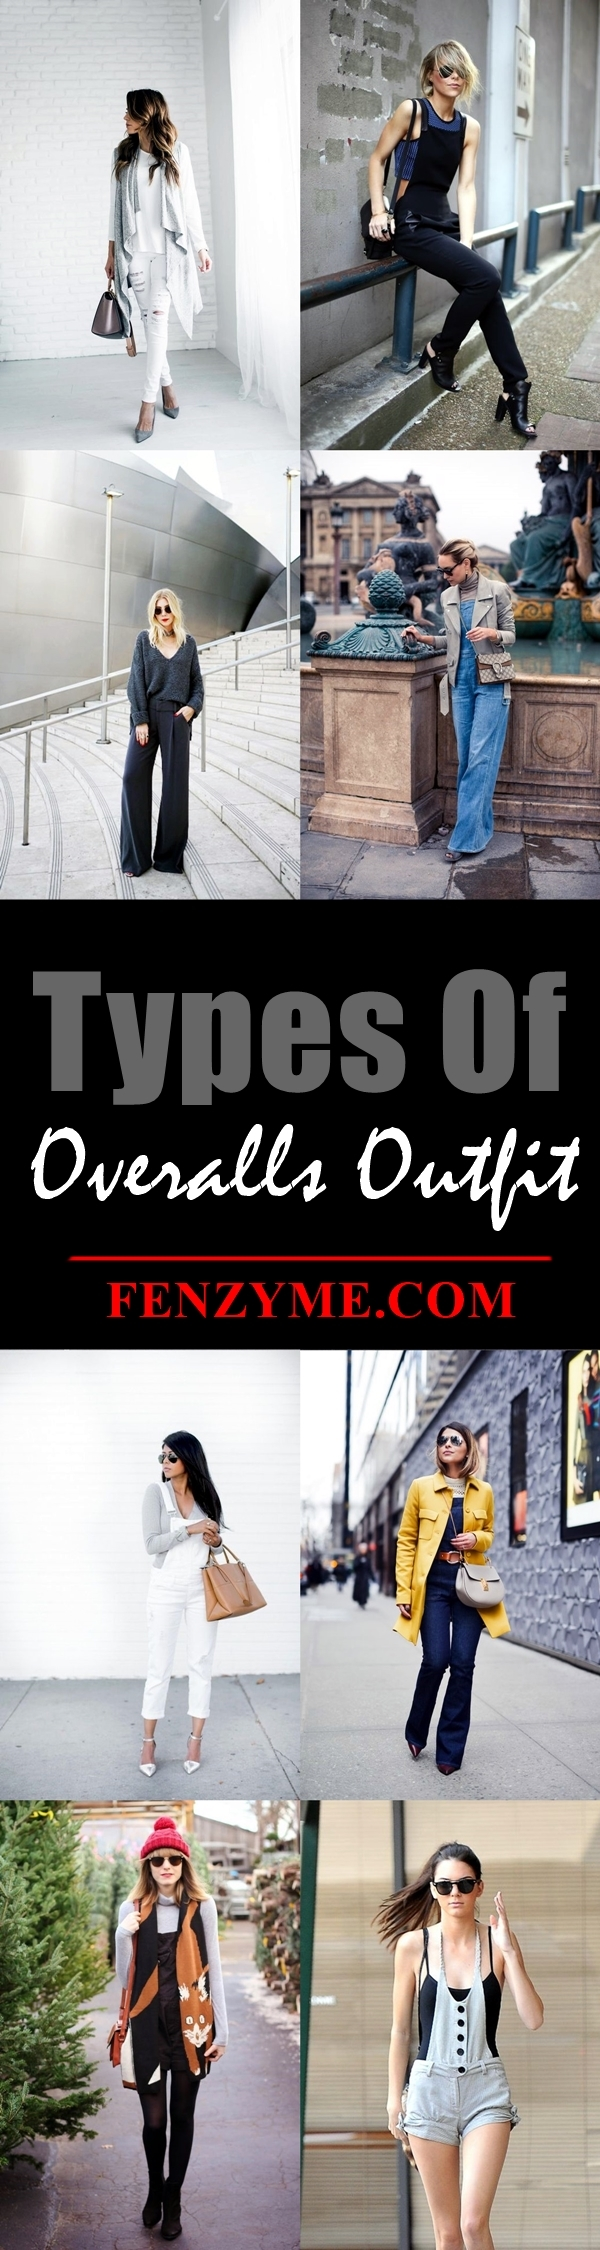 types-of-overalls-outfit-1